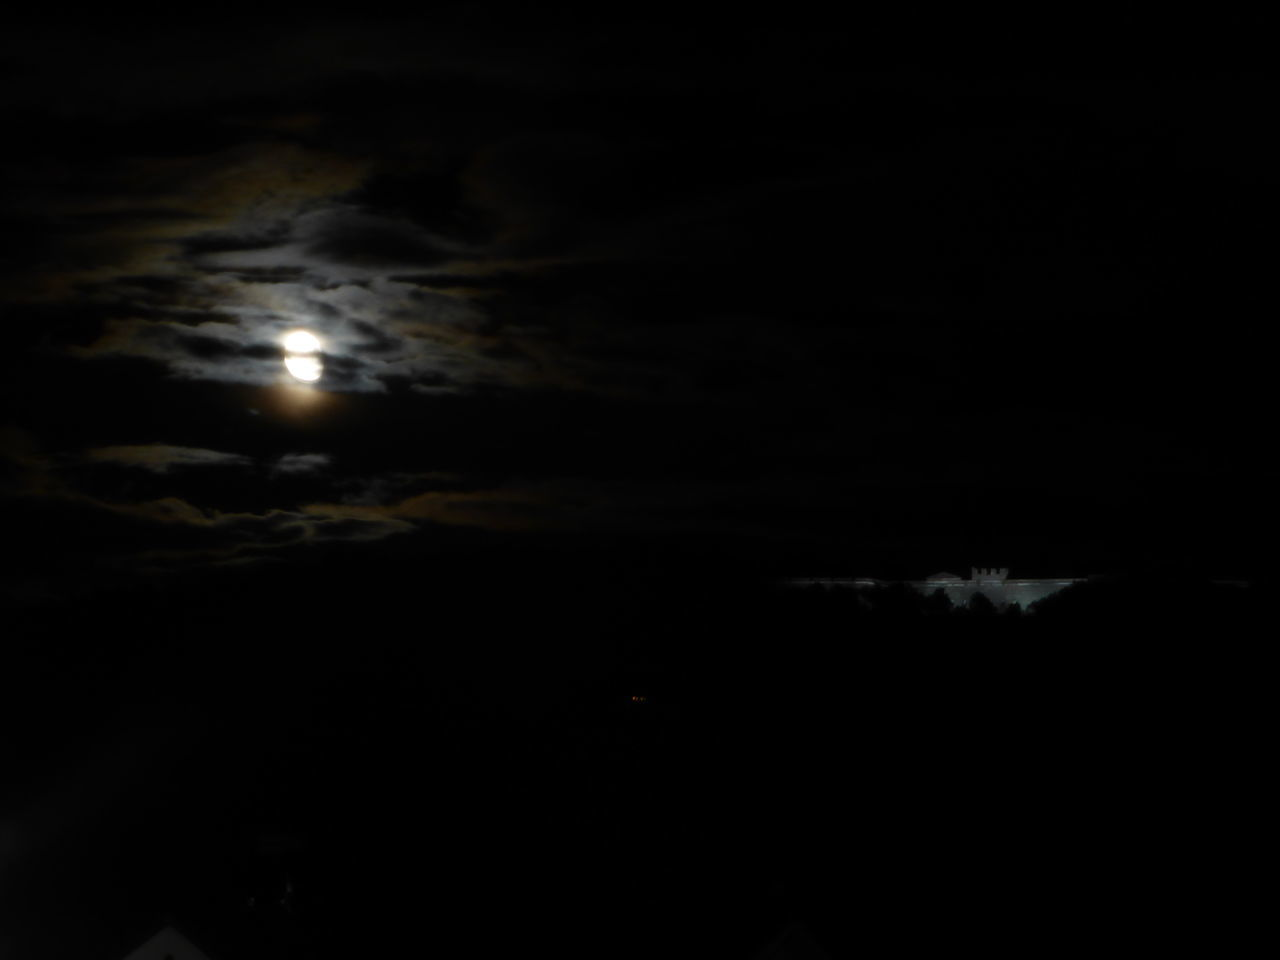 Festung bei Nacht Cloud - Sky Cloudy Illuminated Moon Moonlight Nature Night Outdoors